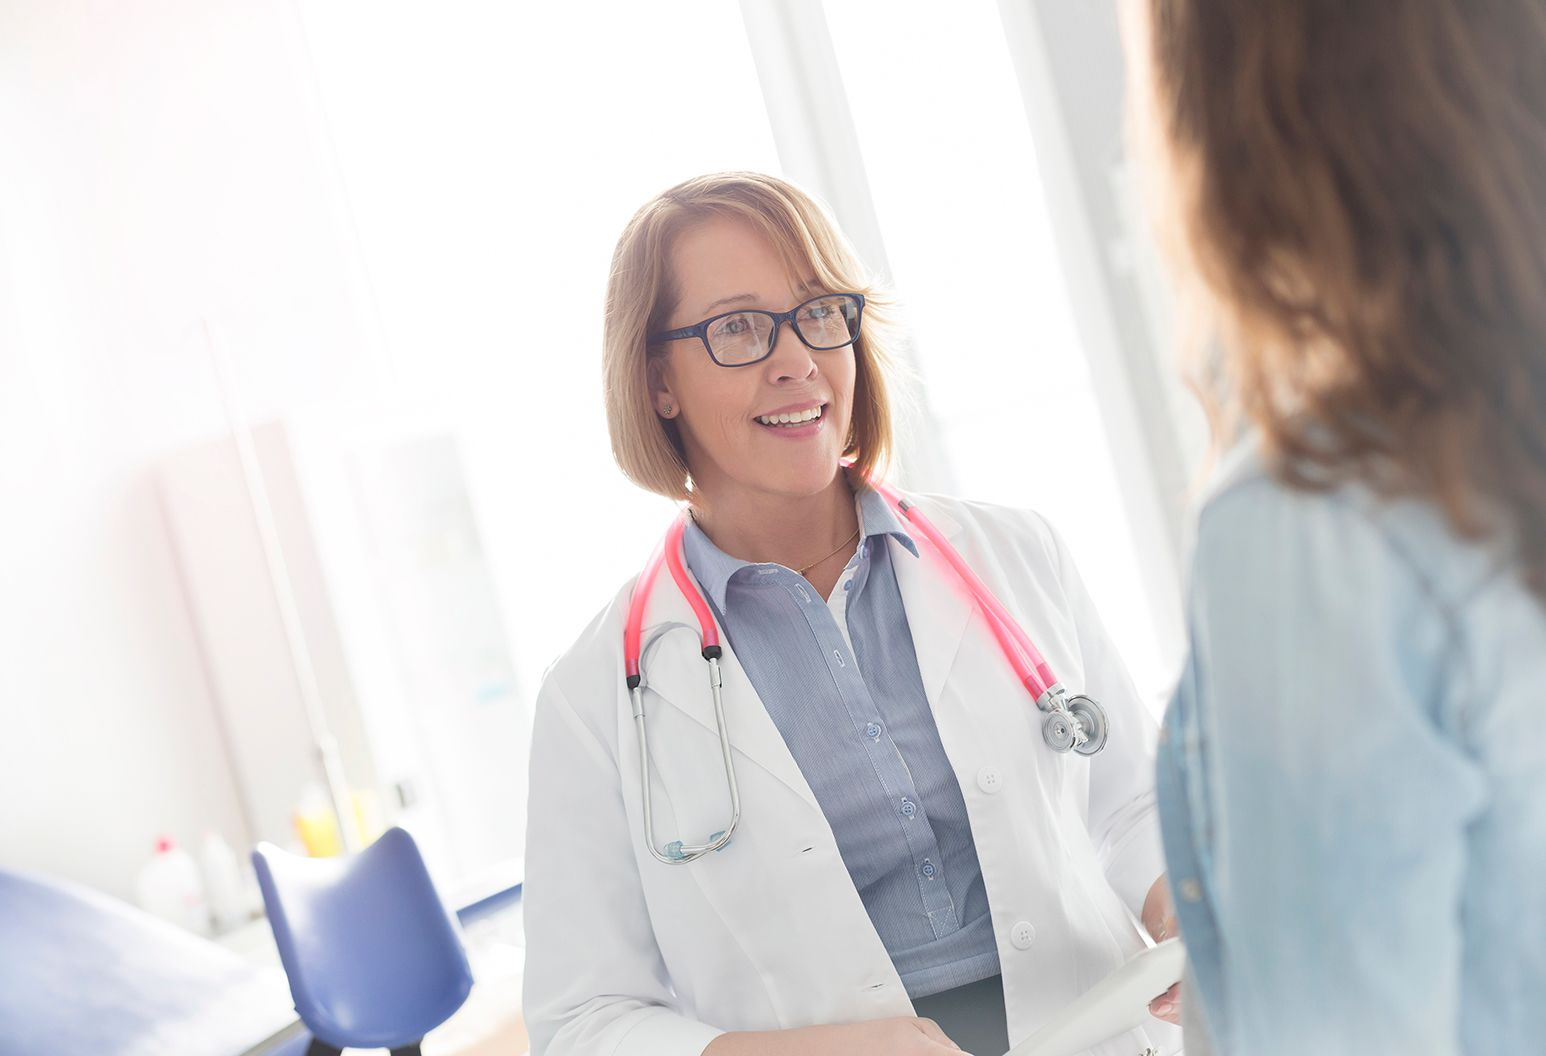 A doctor with a pink stethoscope and black glasses talks to her patient about her results